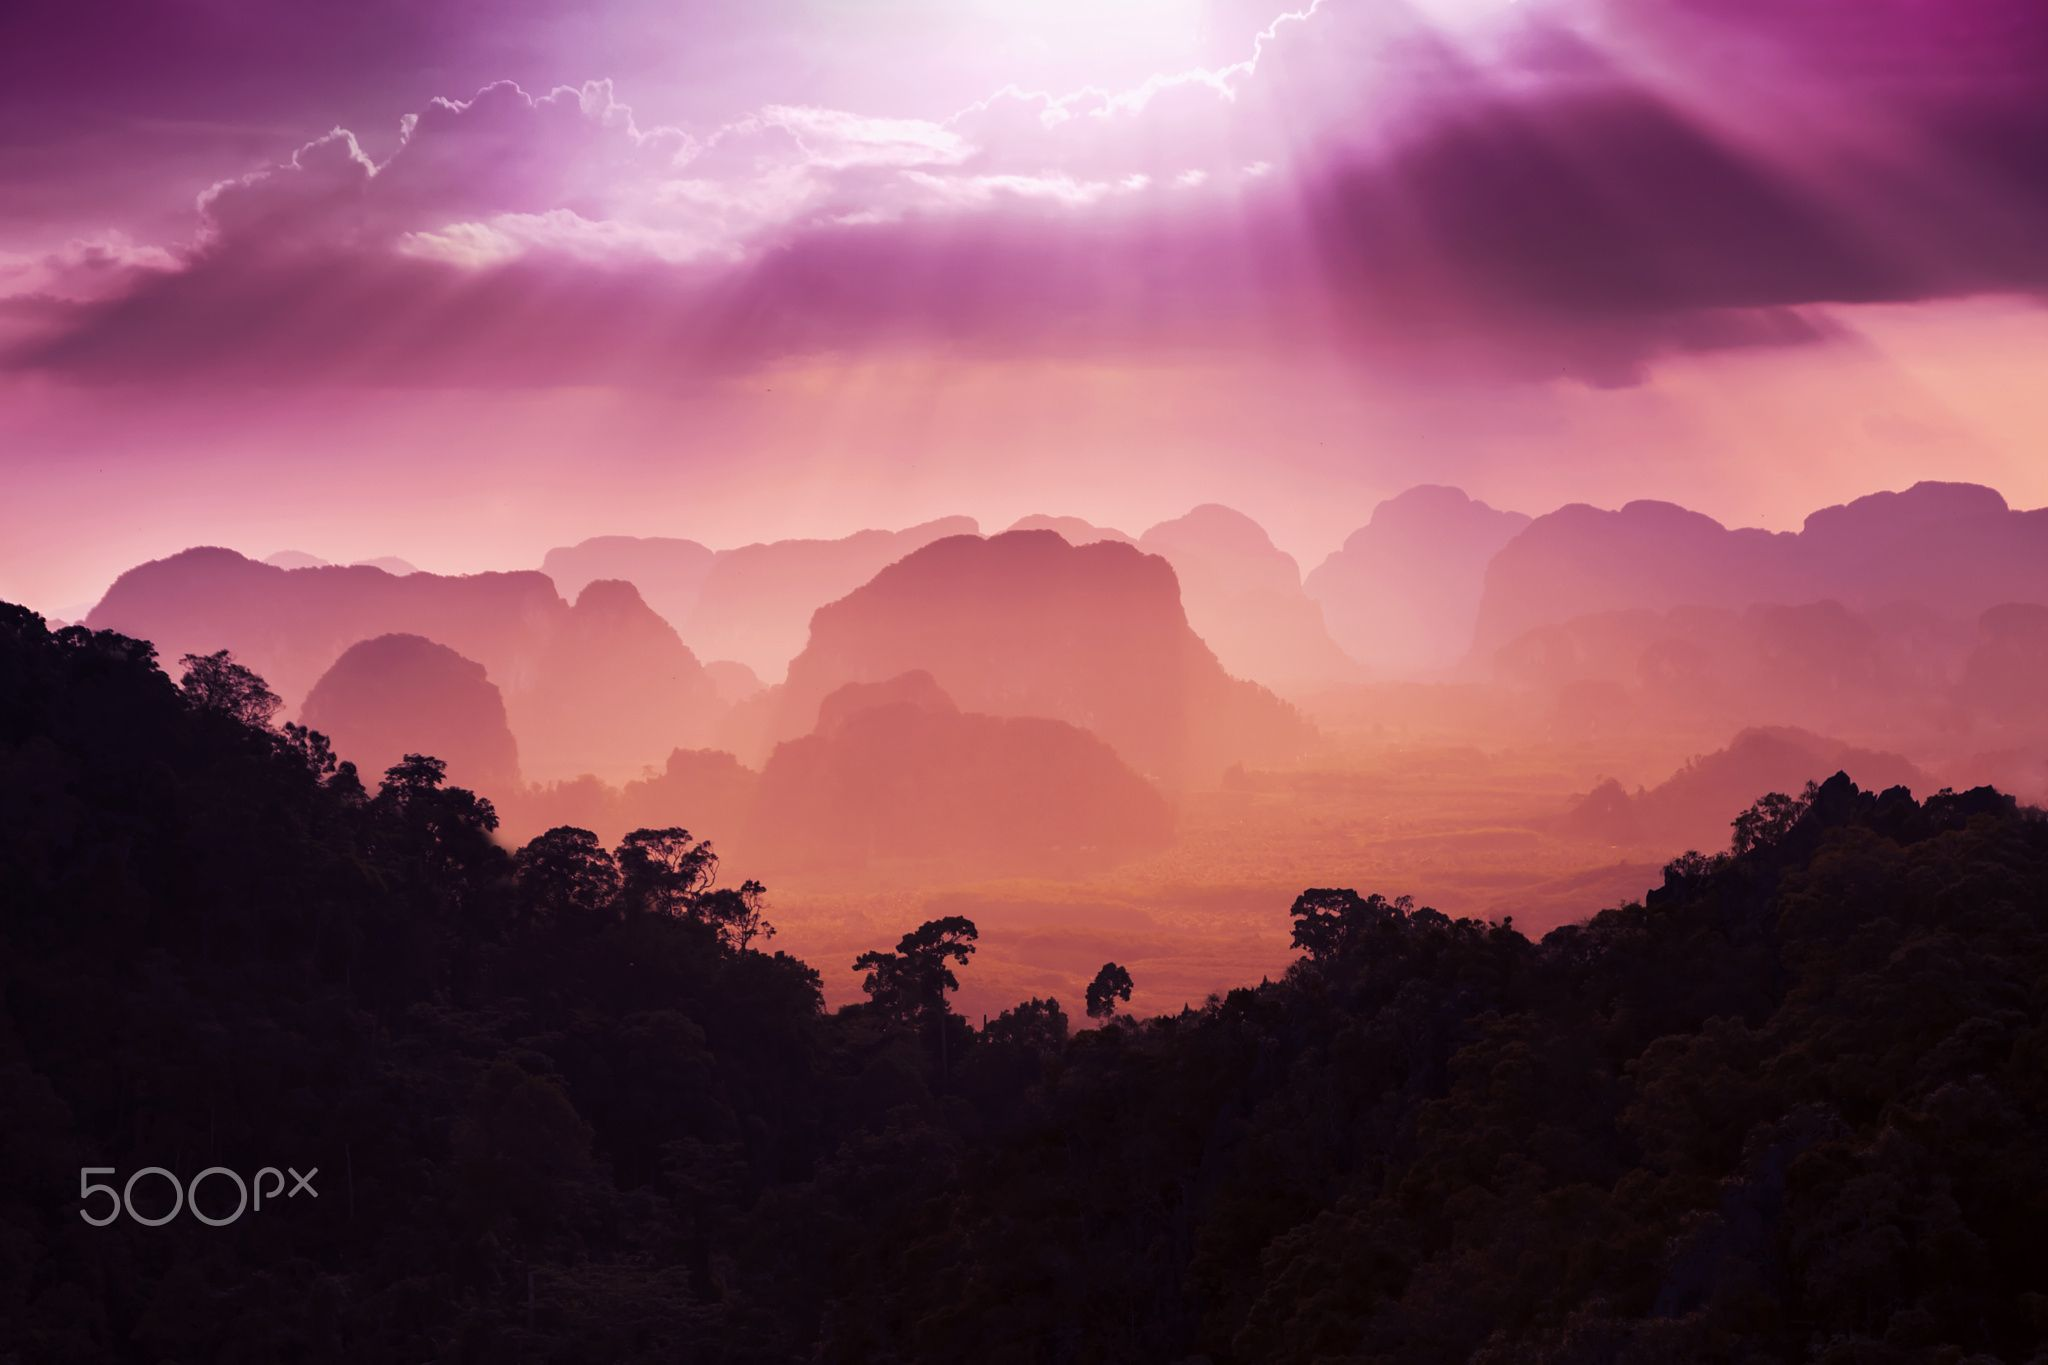 Sunset view - Sunset view of the beauty mountains